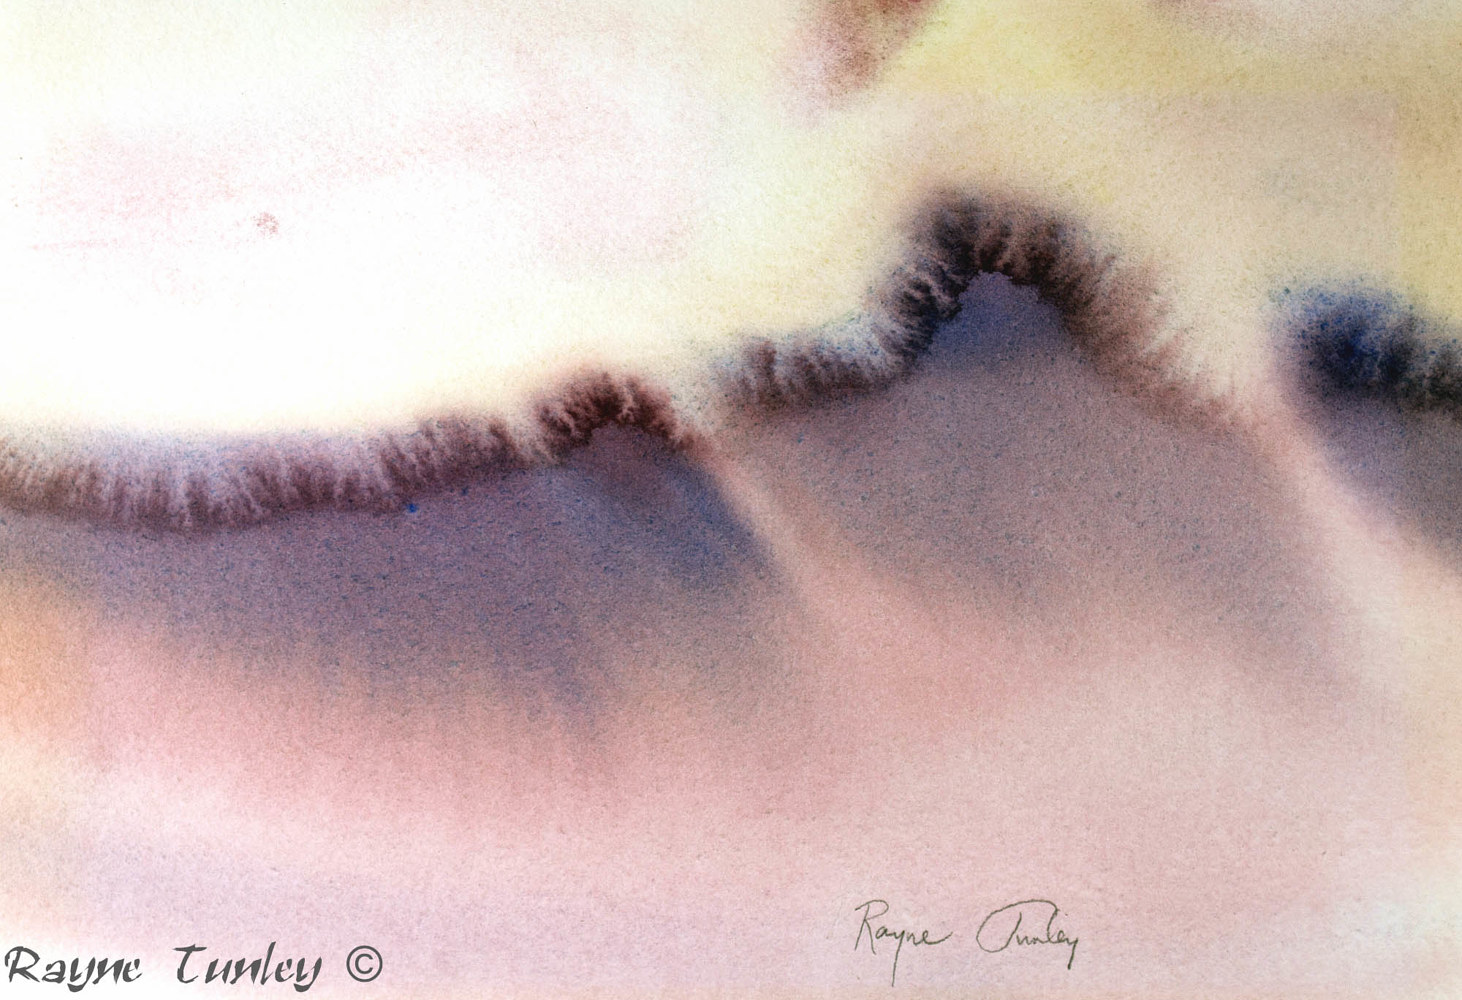 Rayne Tunley, Butterfly Wave, 7in x 10in, watercolour by Rayne Tunley